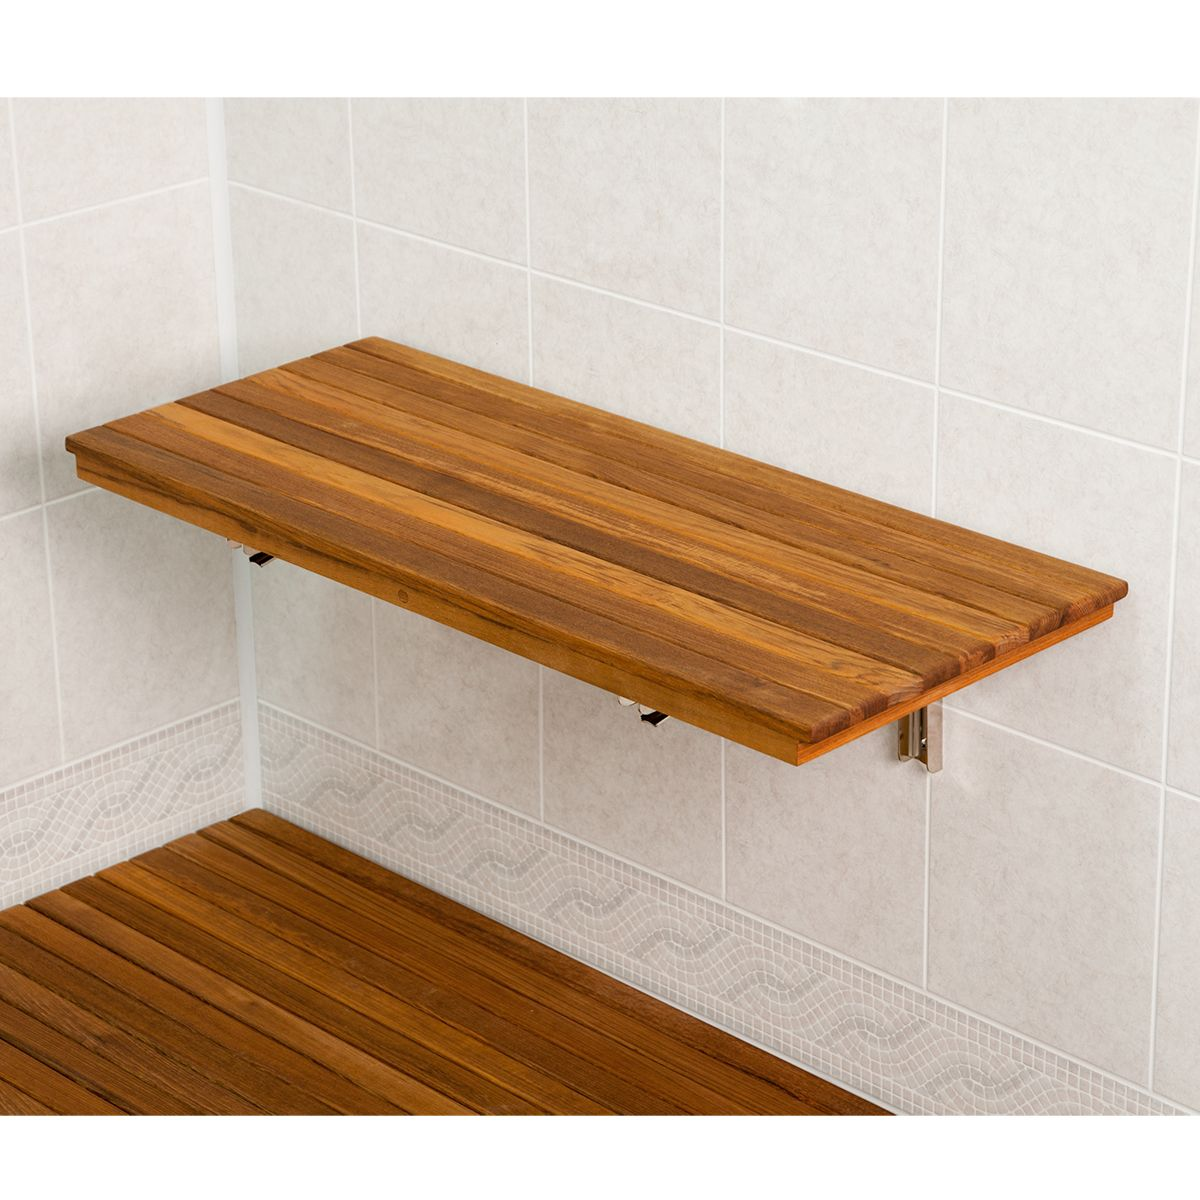 30 wide teak ada wall mount shower bench seat shower benches teak and wall mount Bath bench